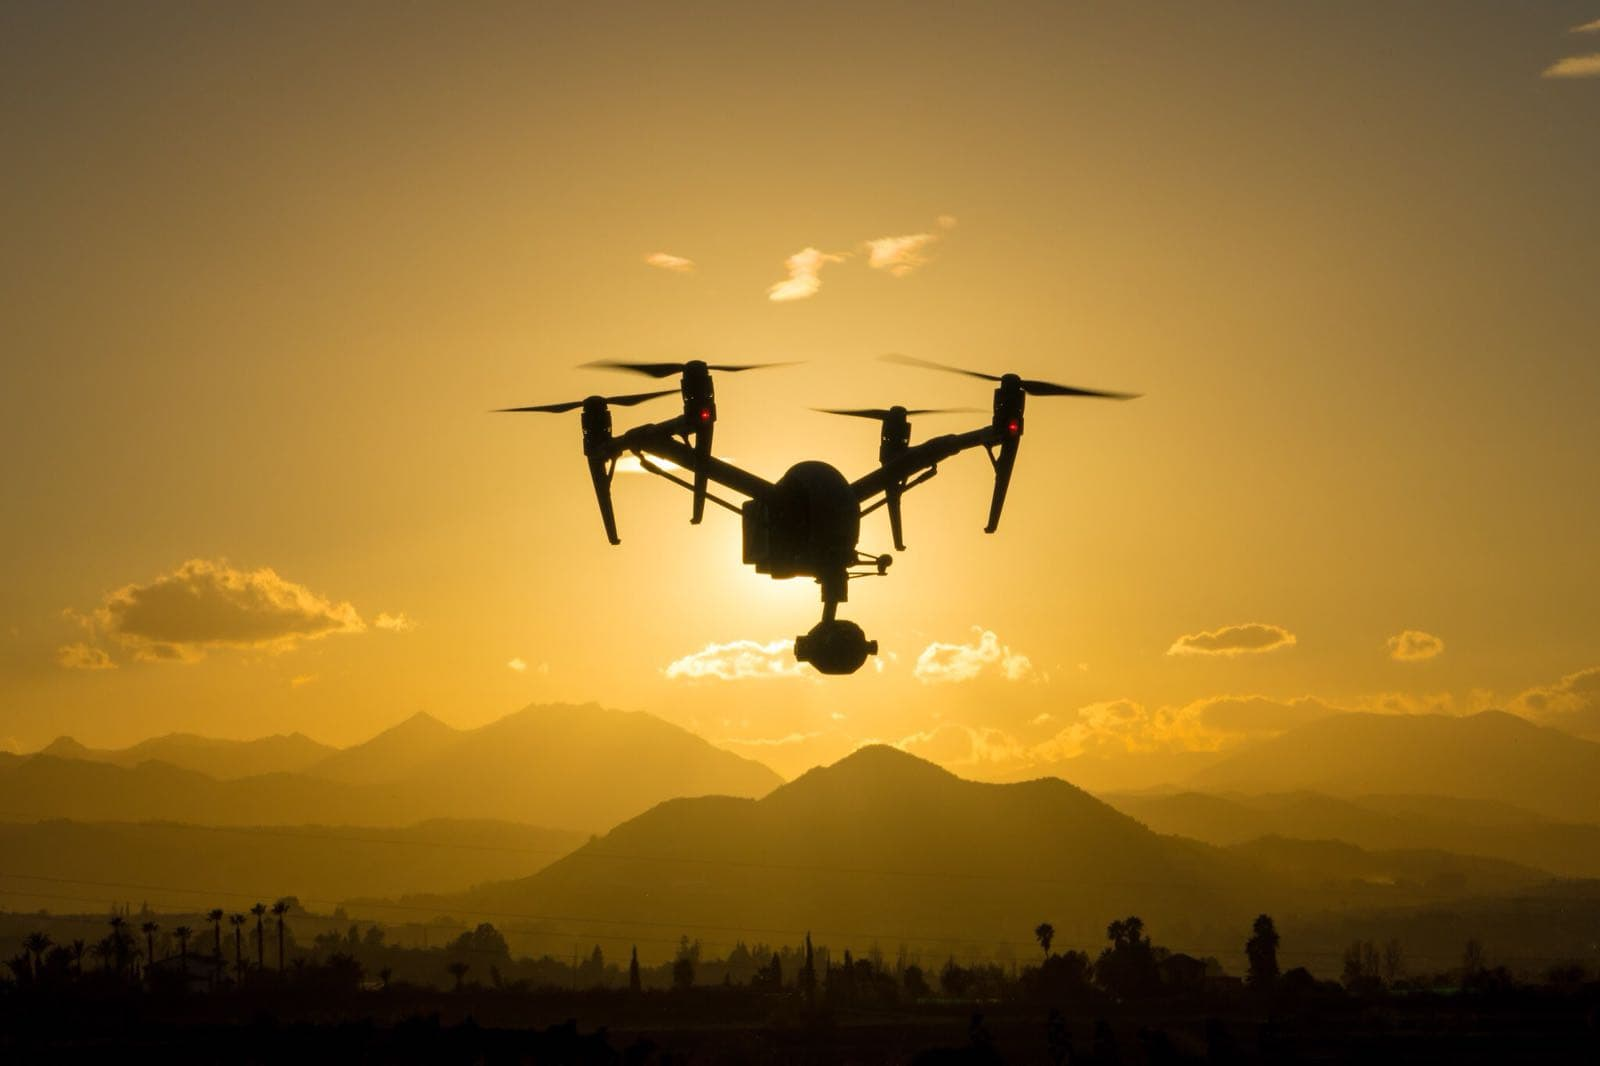 dji inspire 2 drone in flight with gradient orange background at sunset